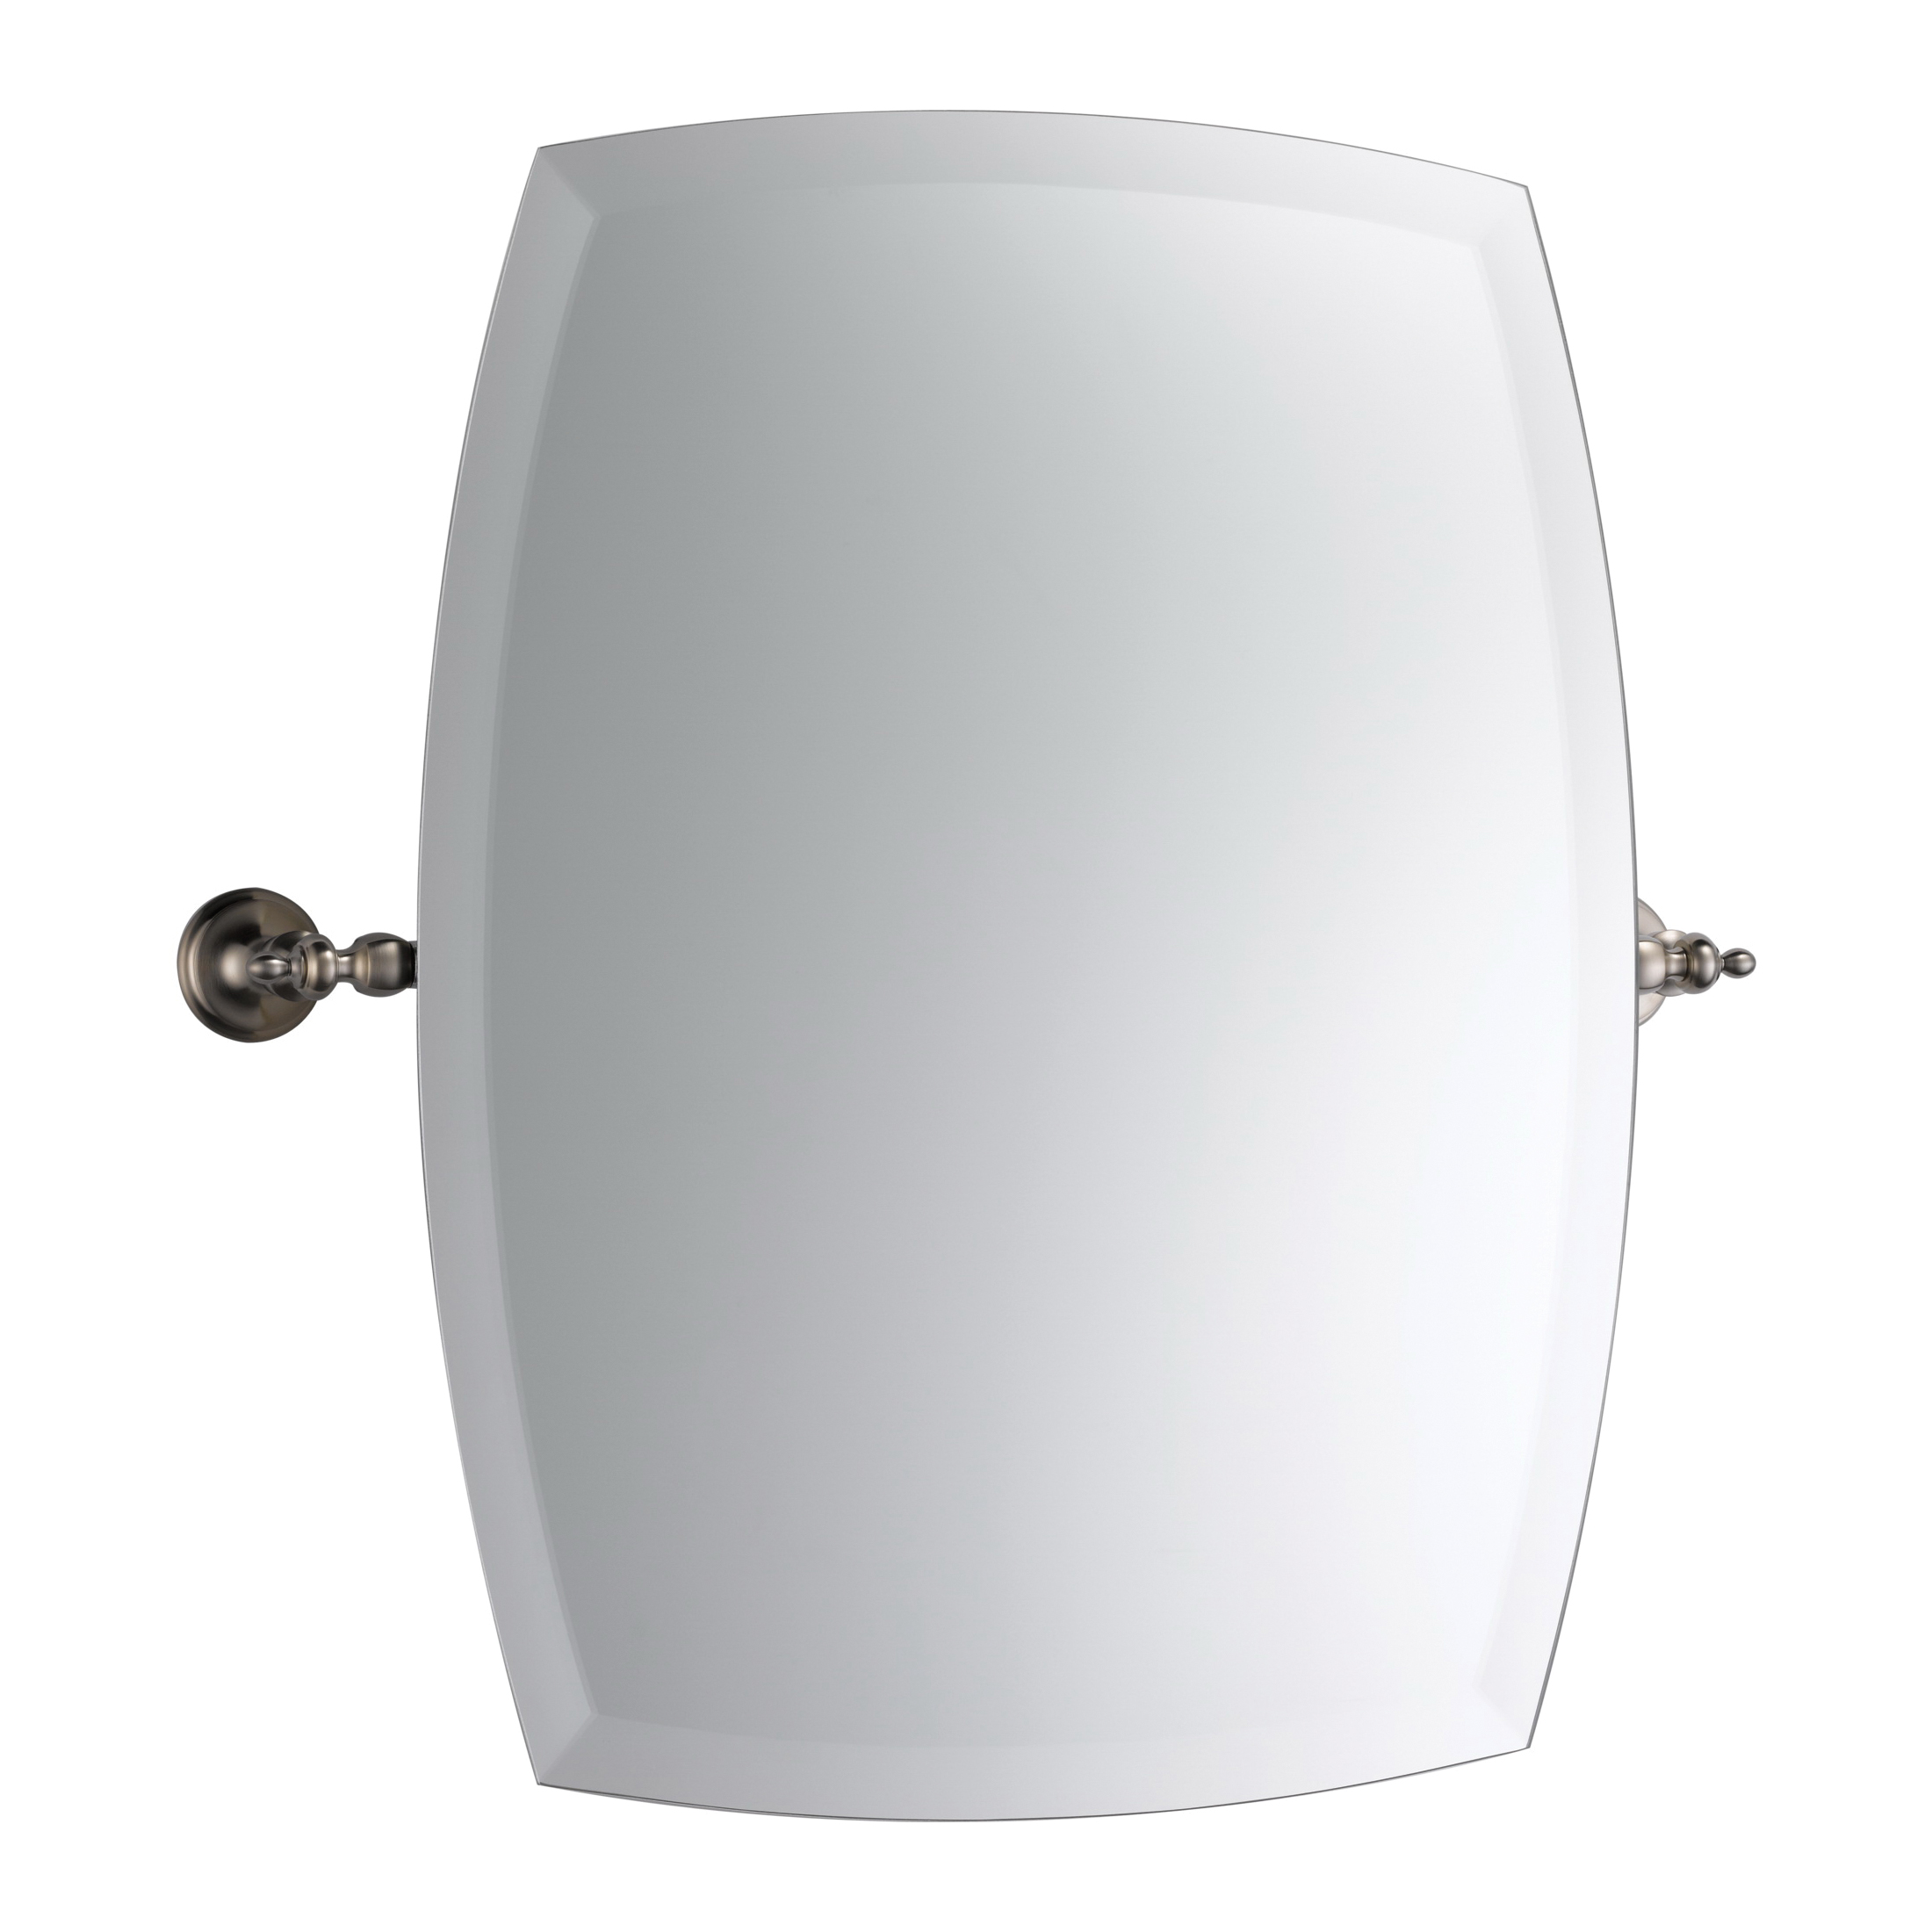 Brizo® 698085-BN Charlotte® Wall Mirror, Rectangular, 20 in W, Brushed Nickel, Import